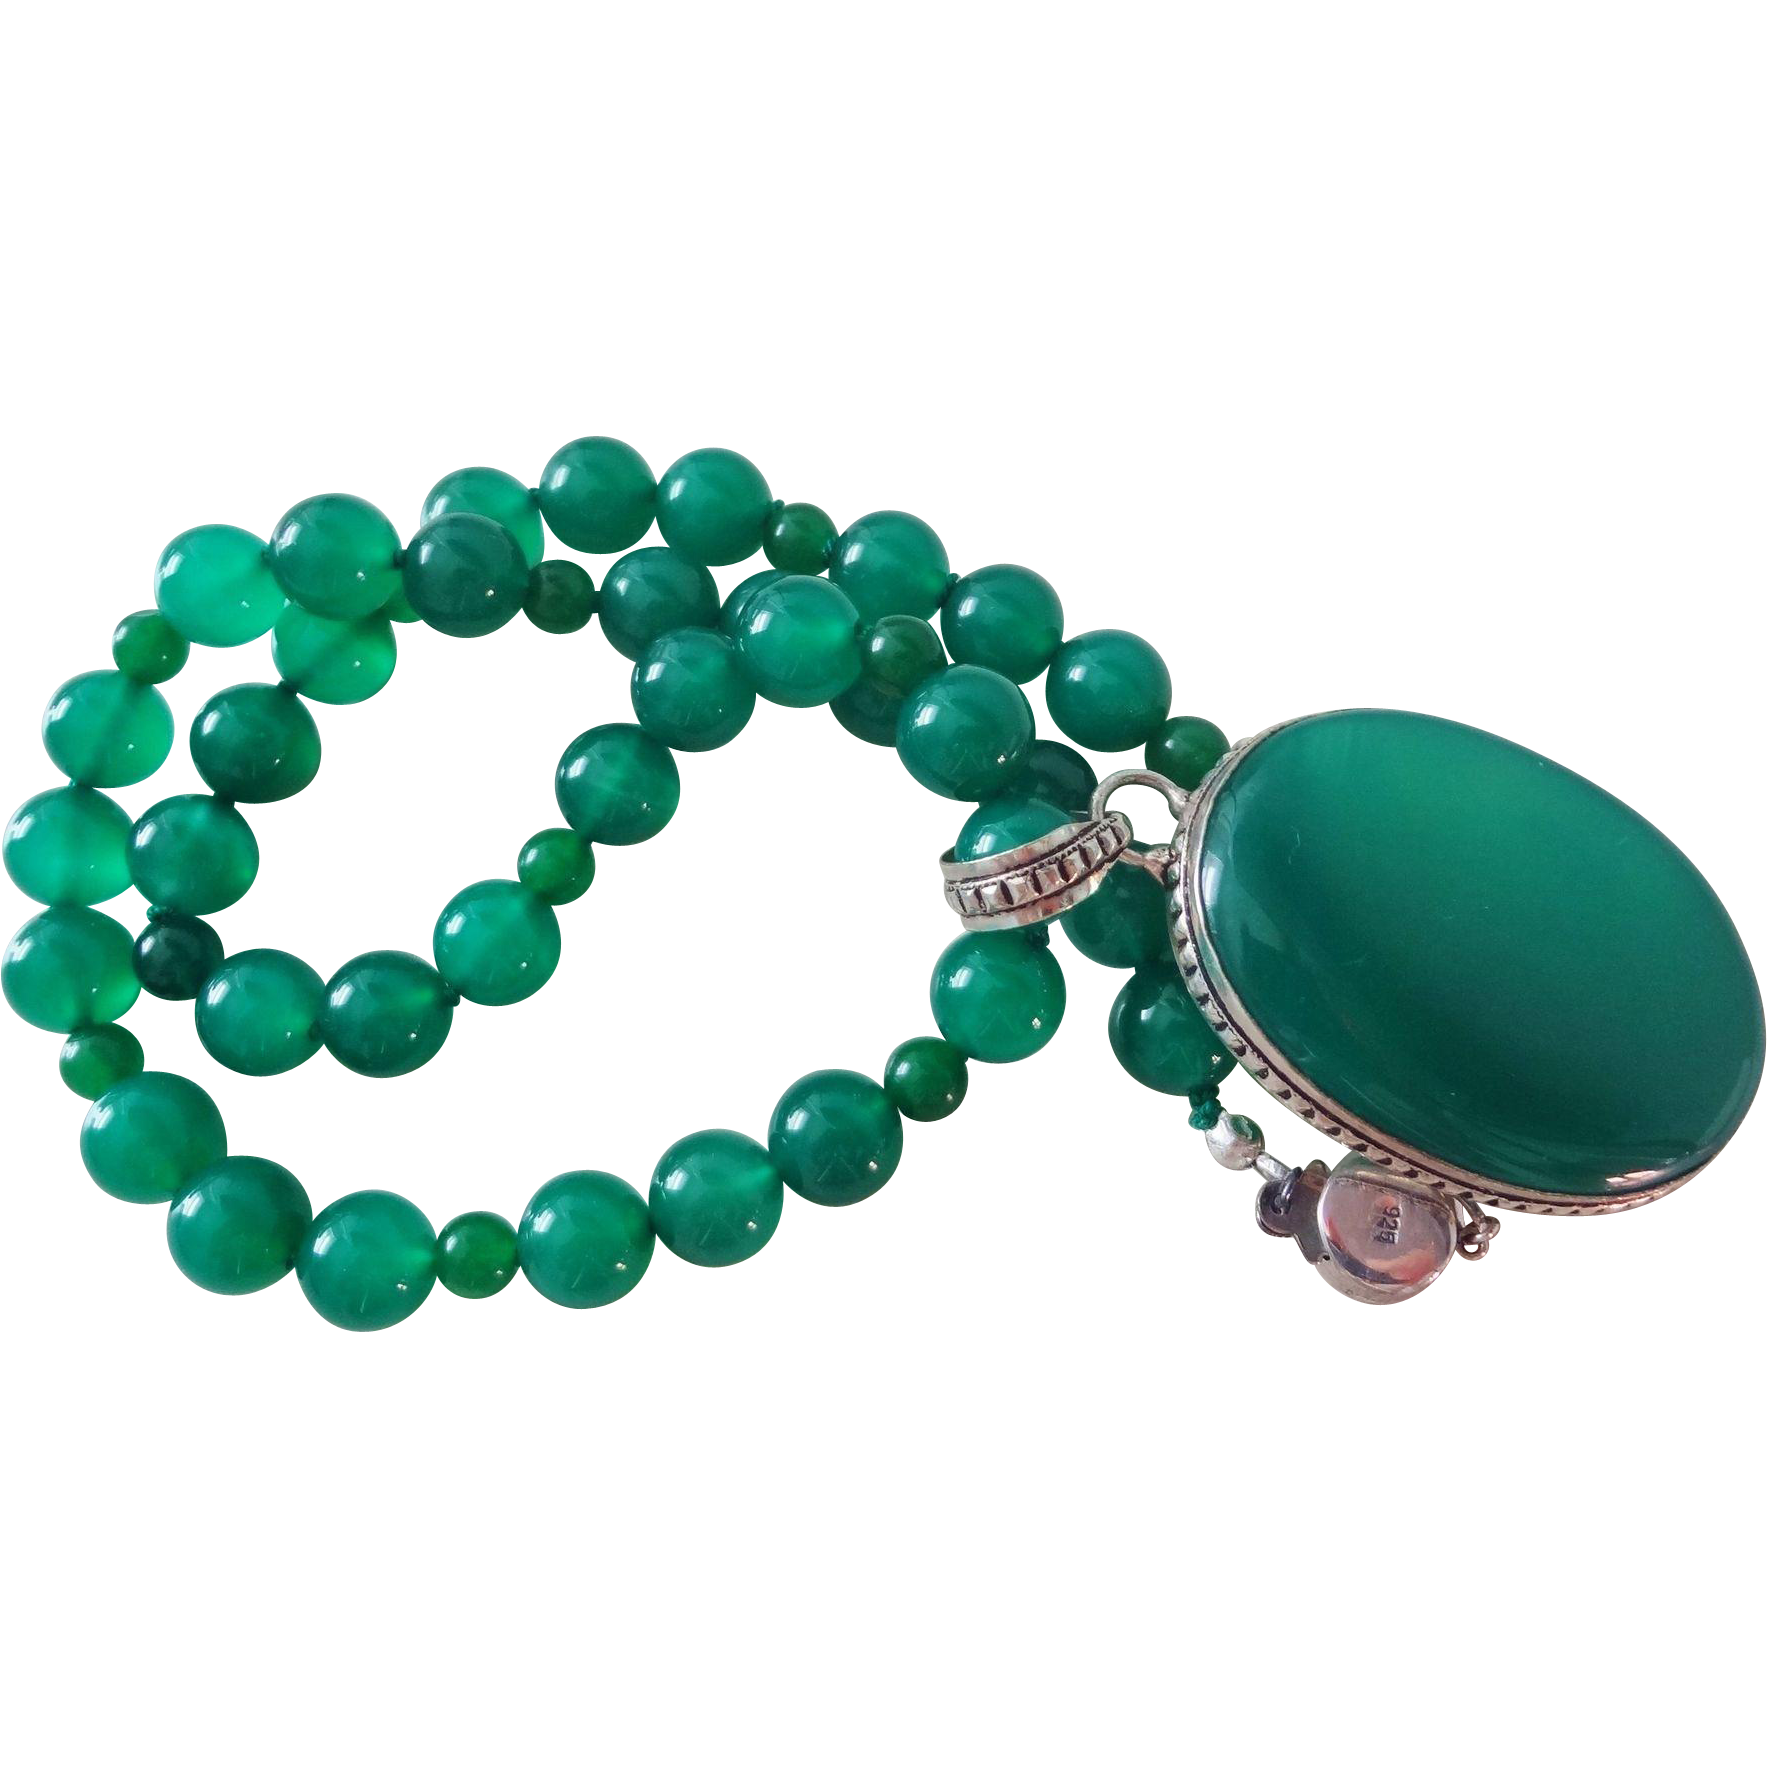 emerald lane green ruby finds necklace chrysoprase fine item vintage